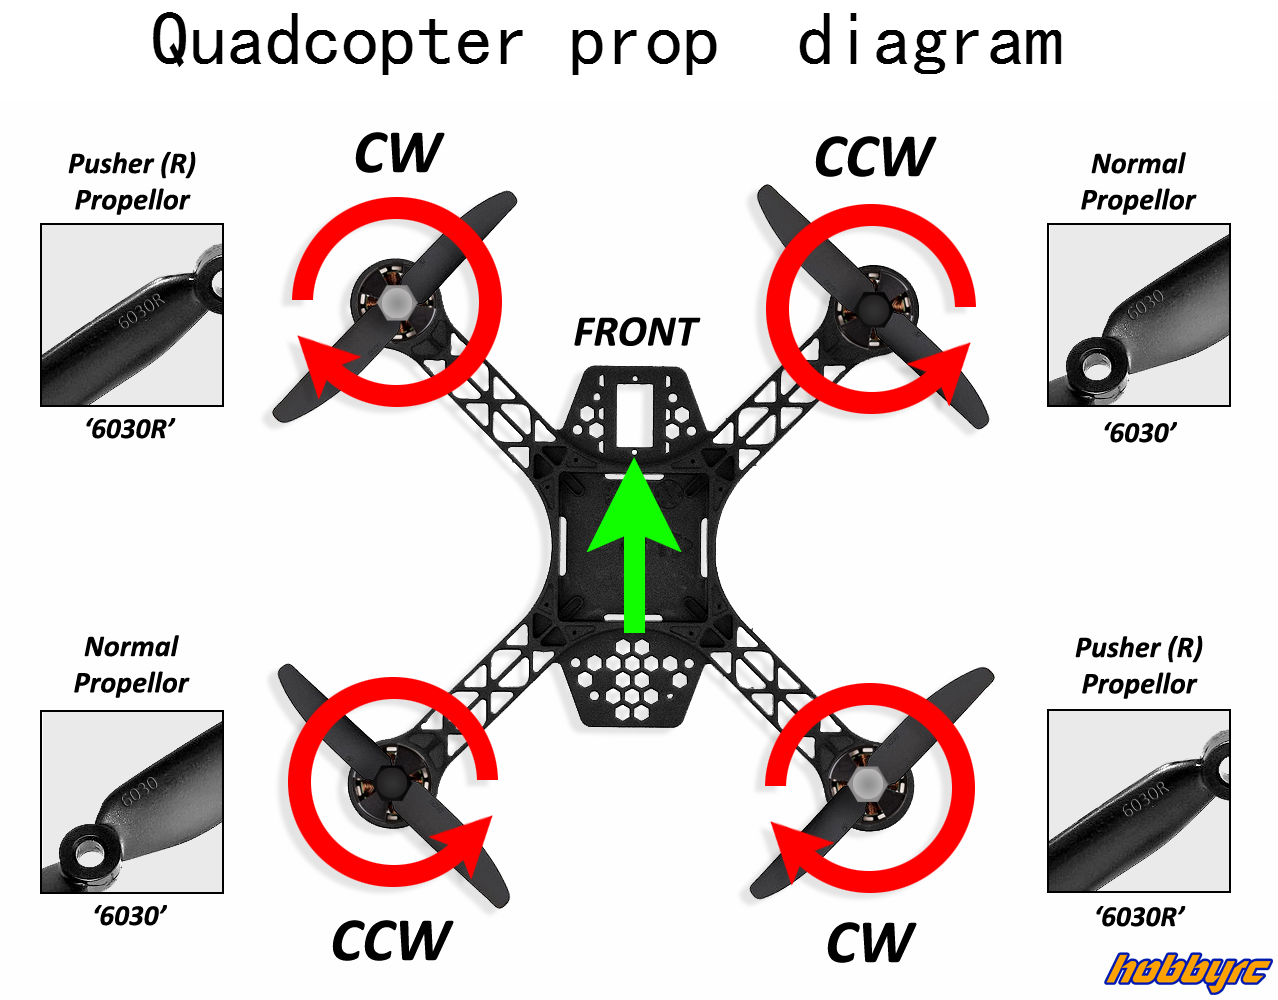 Cc3d Quadcopter Wiring Diagram Library Diy Automotive Diagrams Guide Rcdronegood Com Rh